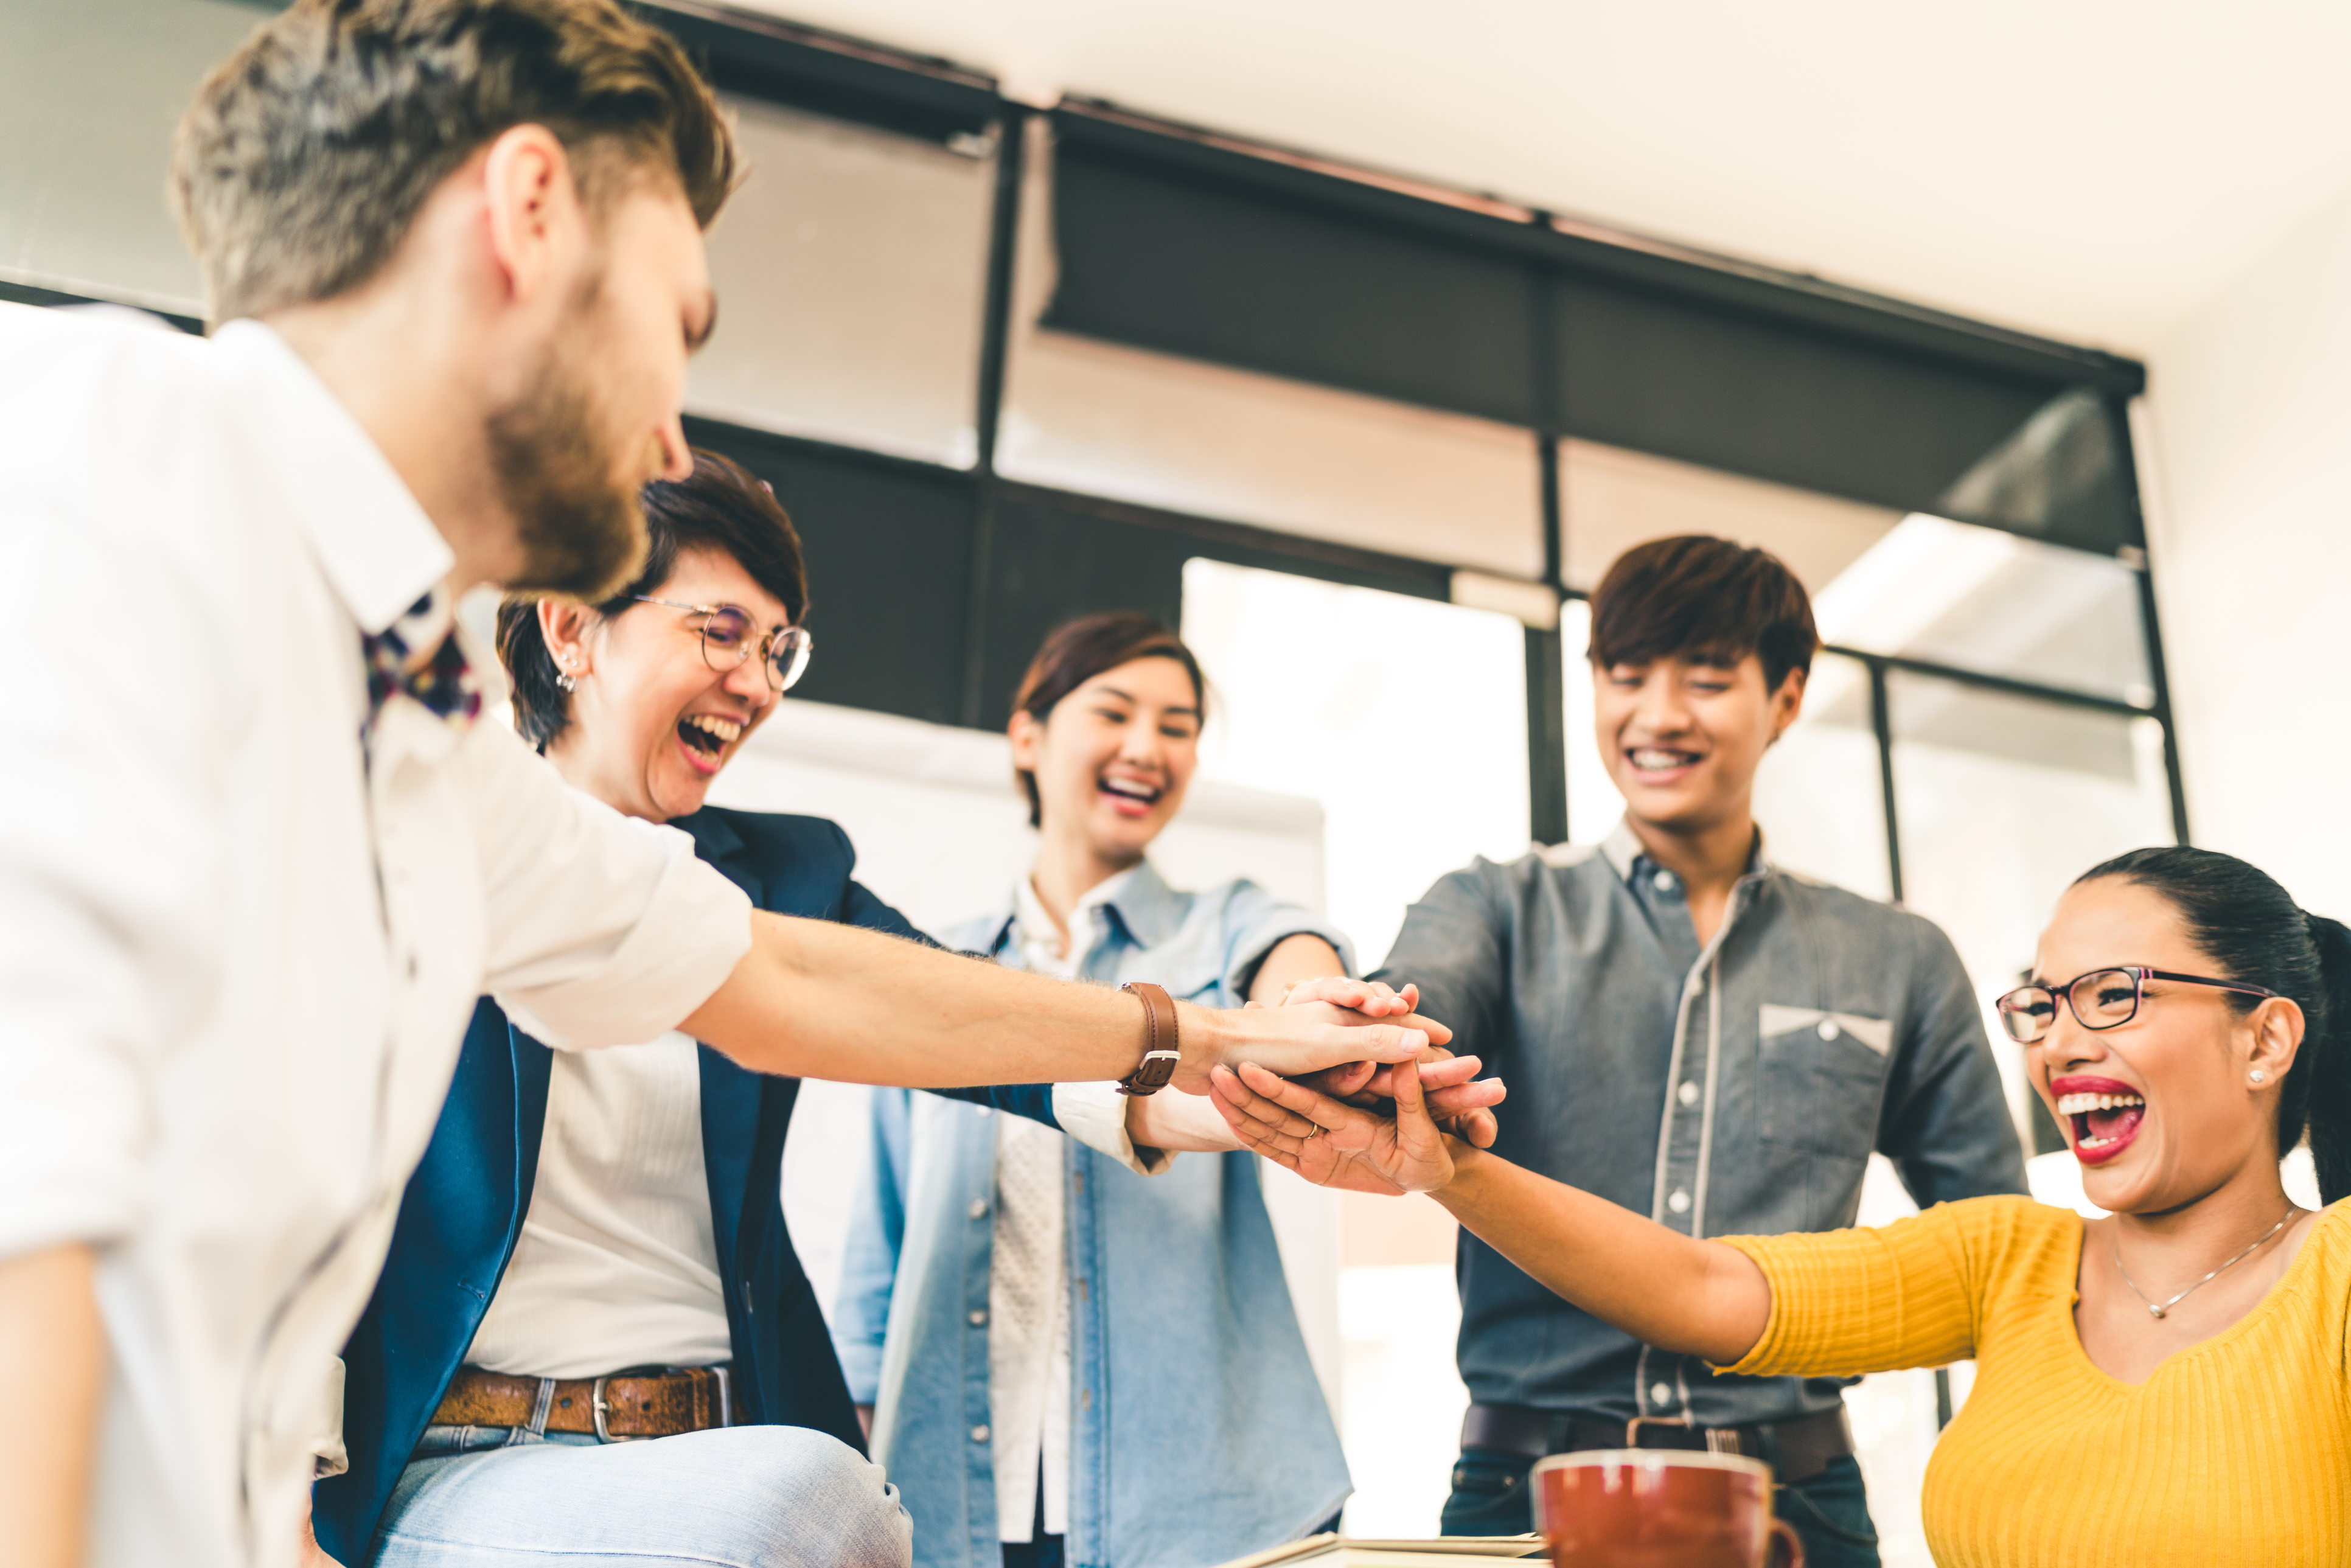 What Matters To Your Future Employees? An Effective Onboarding Experience